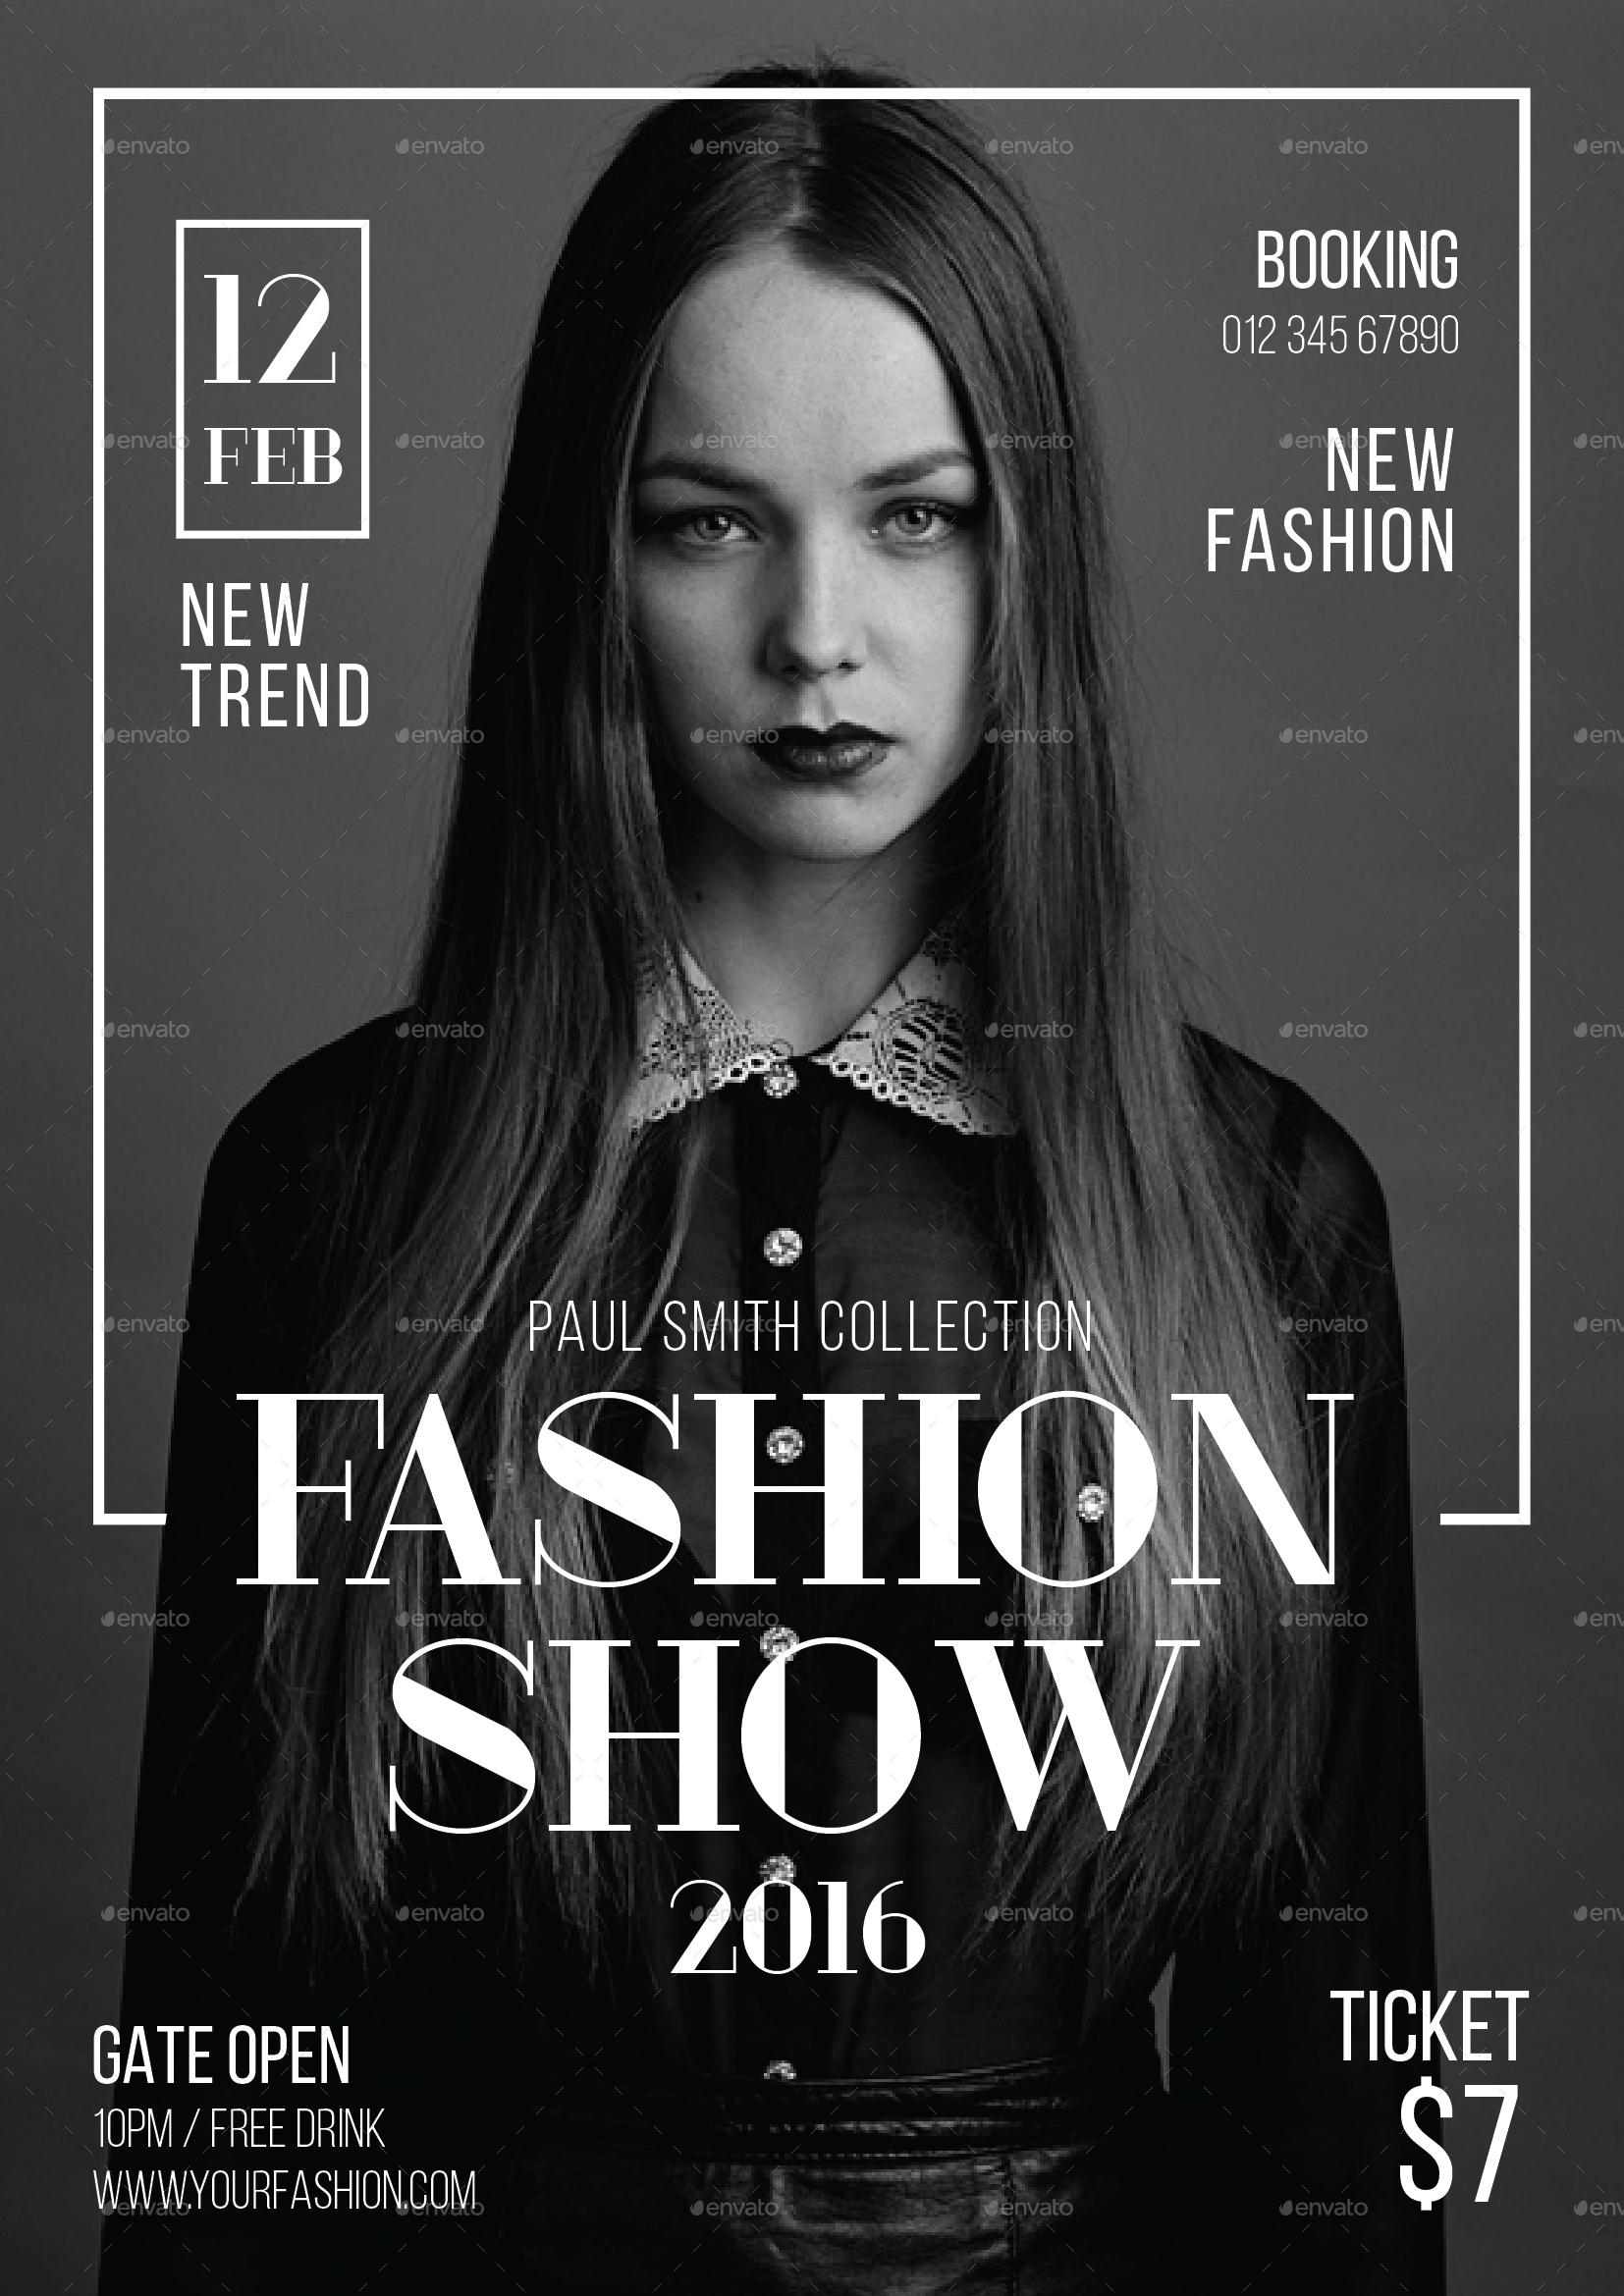 Fashion Show Flyer by tokosatsu | GraphicRiver